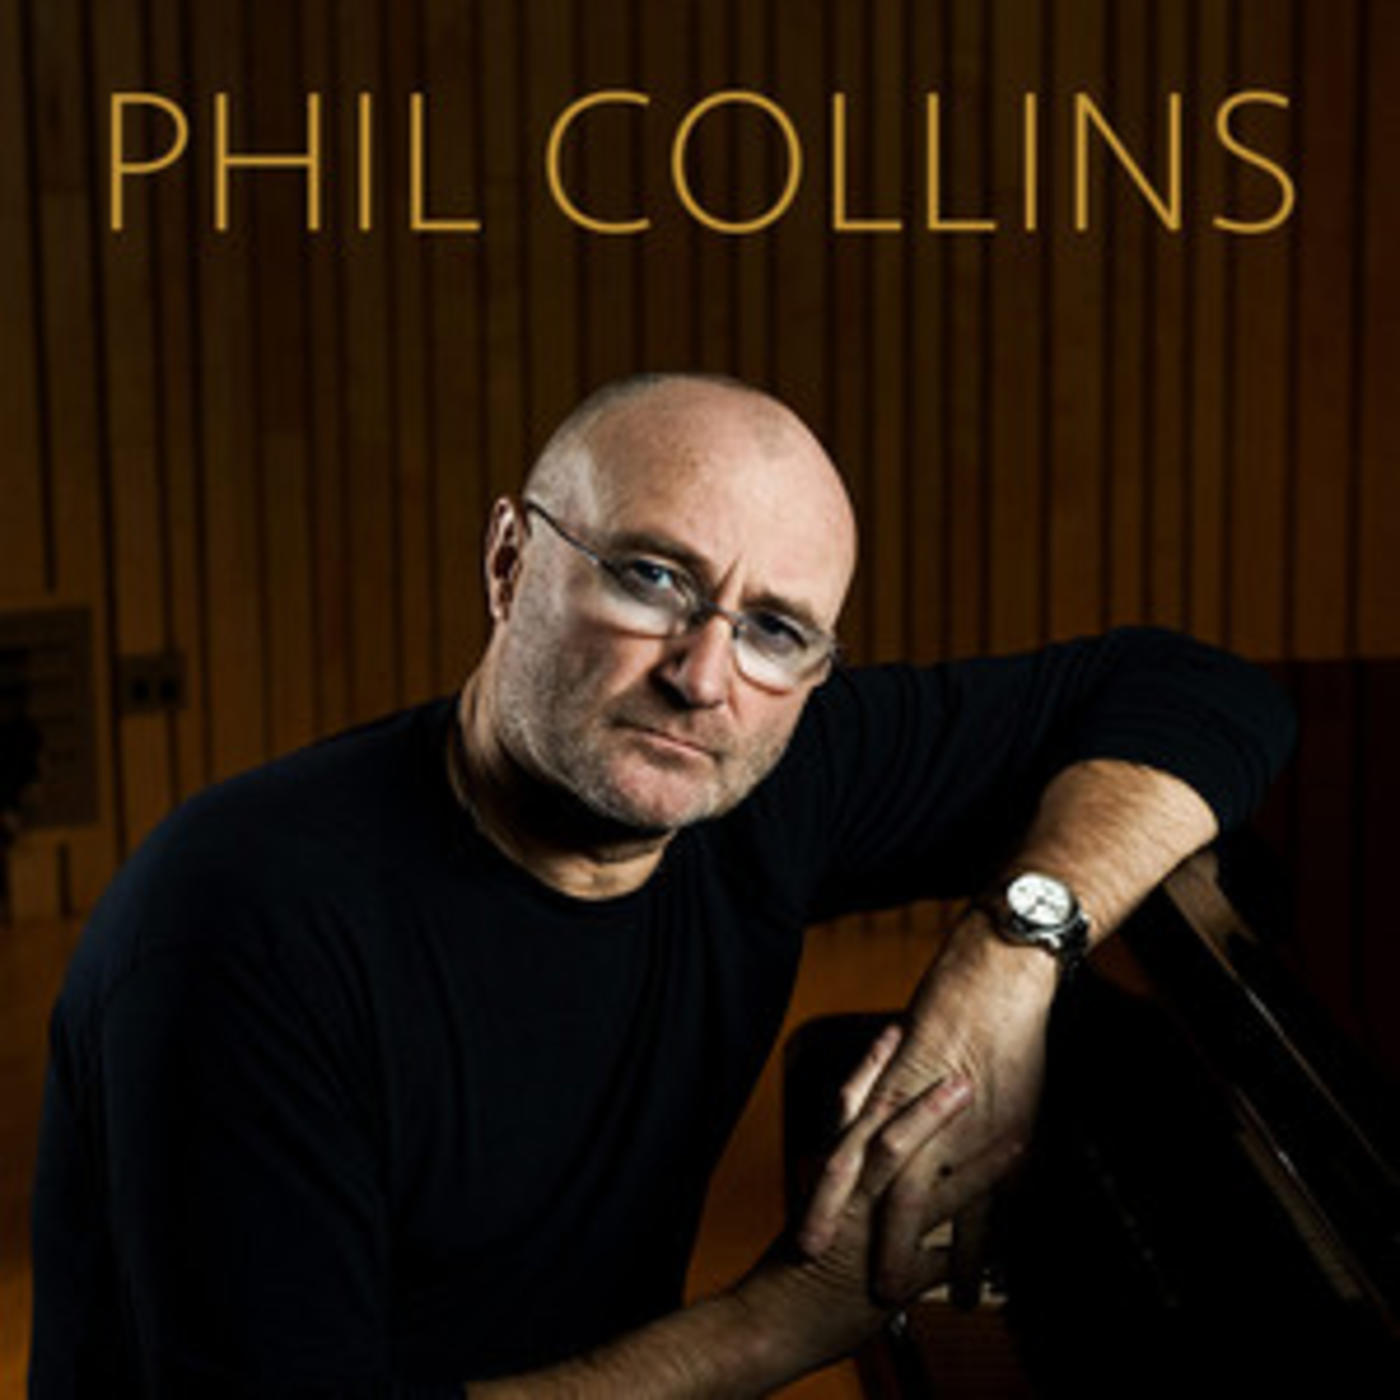 Official Phil Collins Playlist - In The Air Tonight, Easy Lover, One More Night, You Can't Hurry Love, Against All Odds, Two Hearts, I Missed Again, Groovy Kind of Love, True Colors, I Don't Care A...